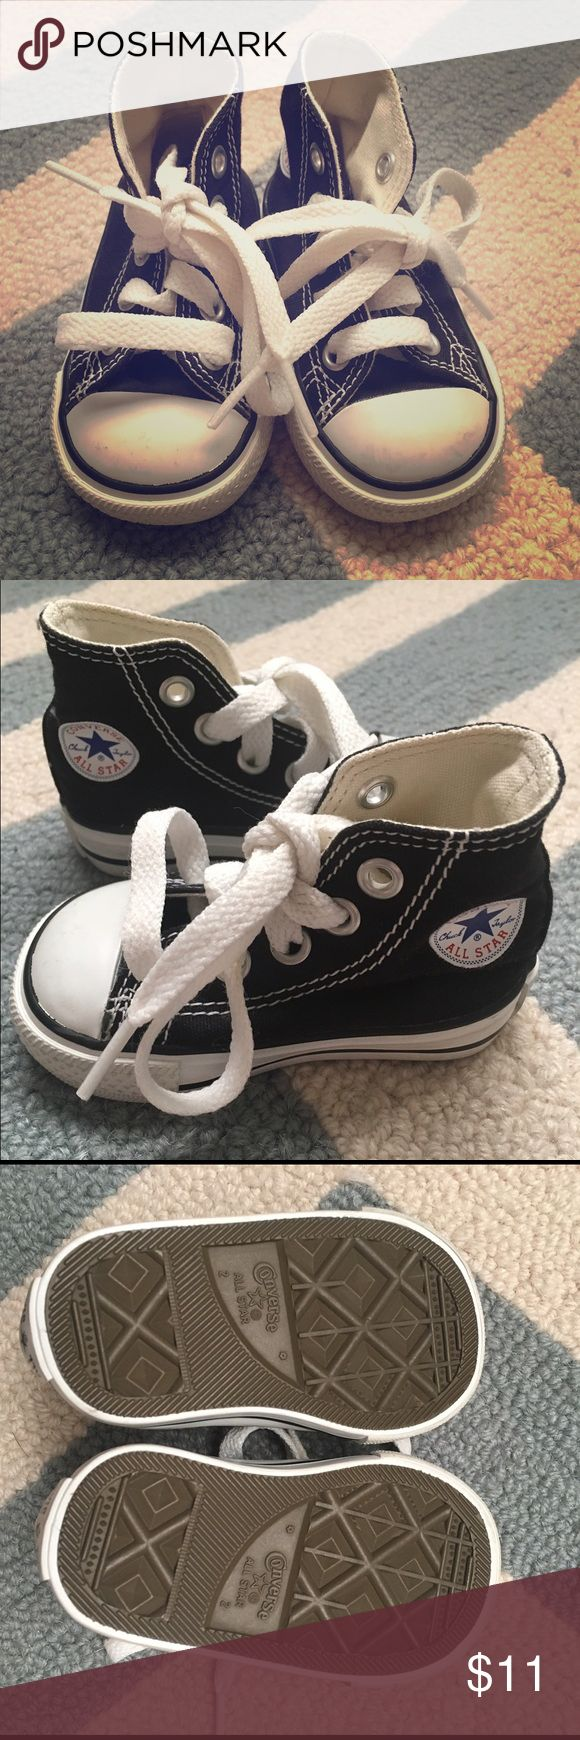 Baby Converse All Star High Top Sneakers Like new classic black Converse All Star High Tops. Size 2. Converse Shoes Sneakers